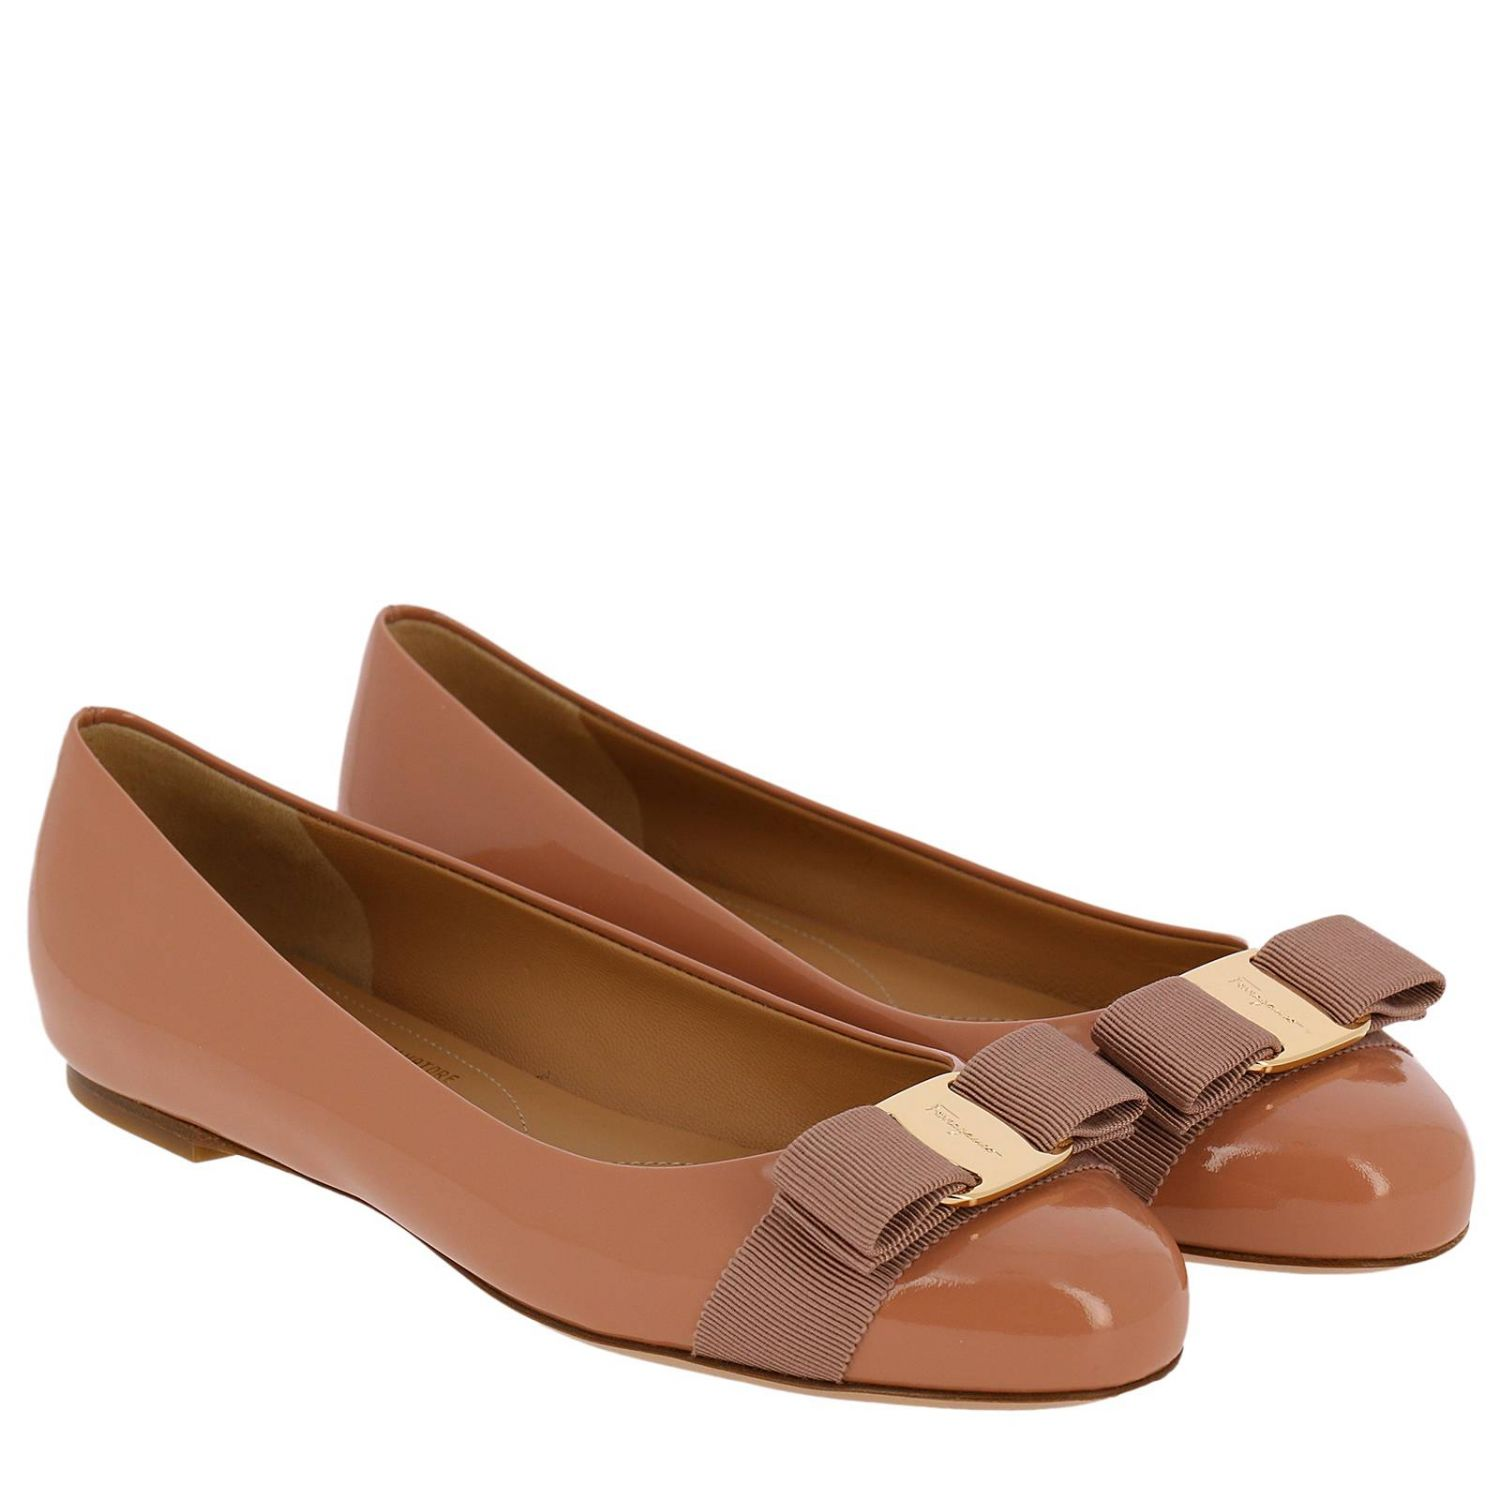 Ballet flats Salvatore Ferragamo: Varina ballet flats in patent leather with Vara gros grain bow blush pink 2